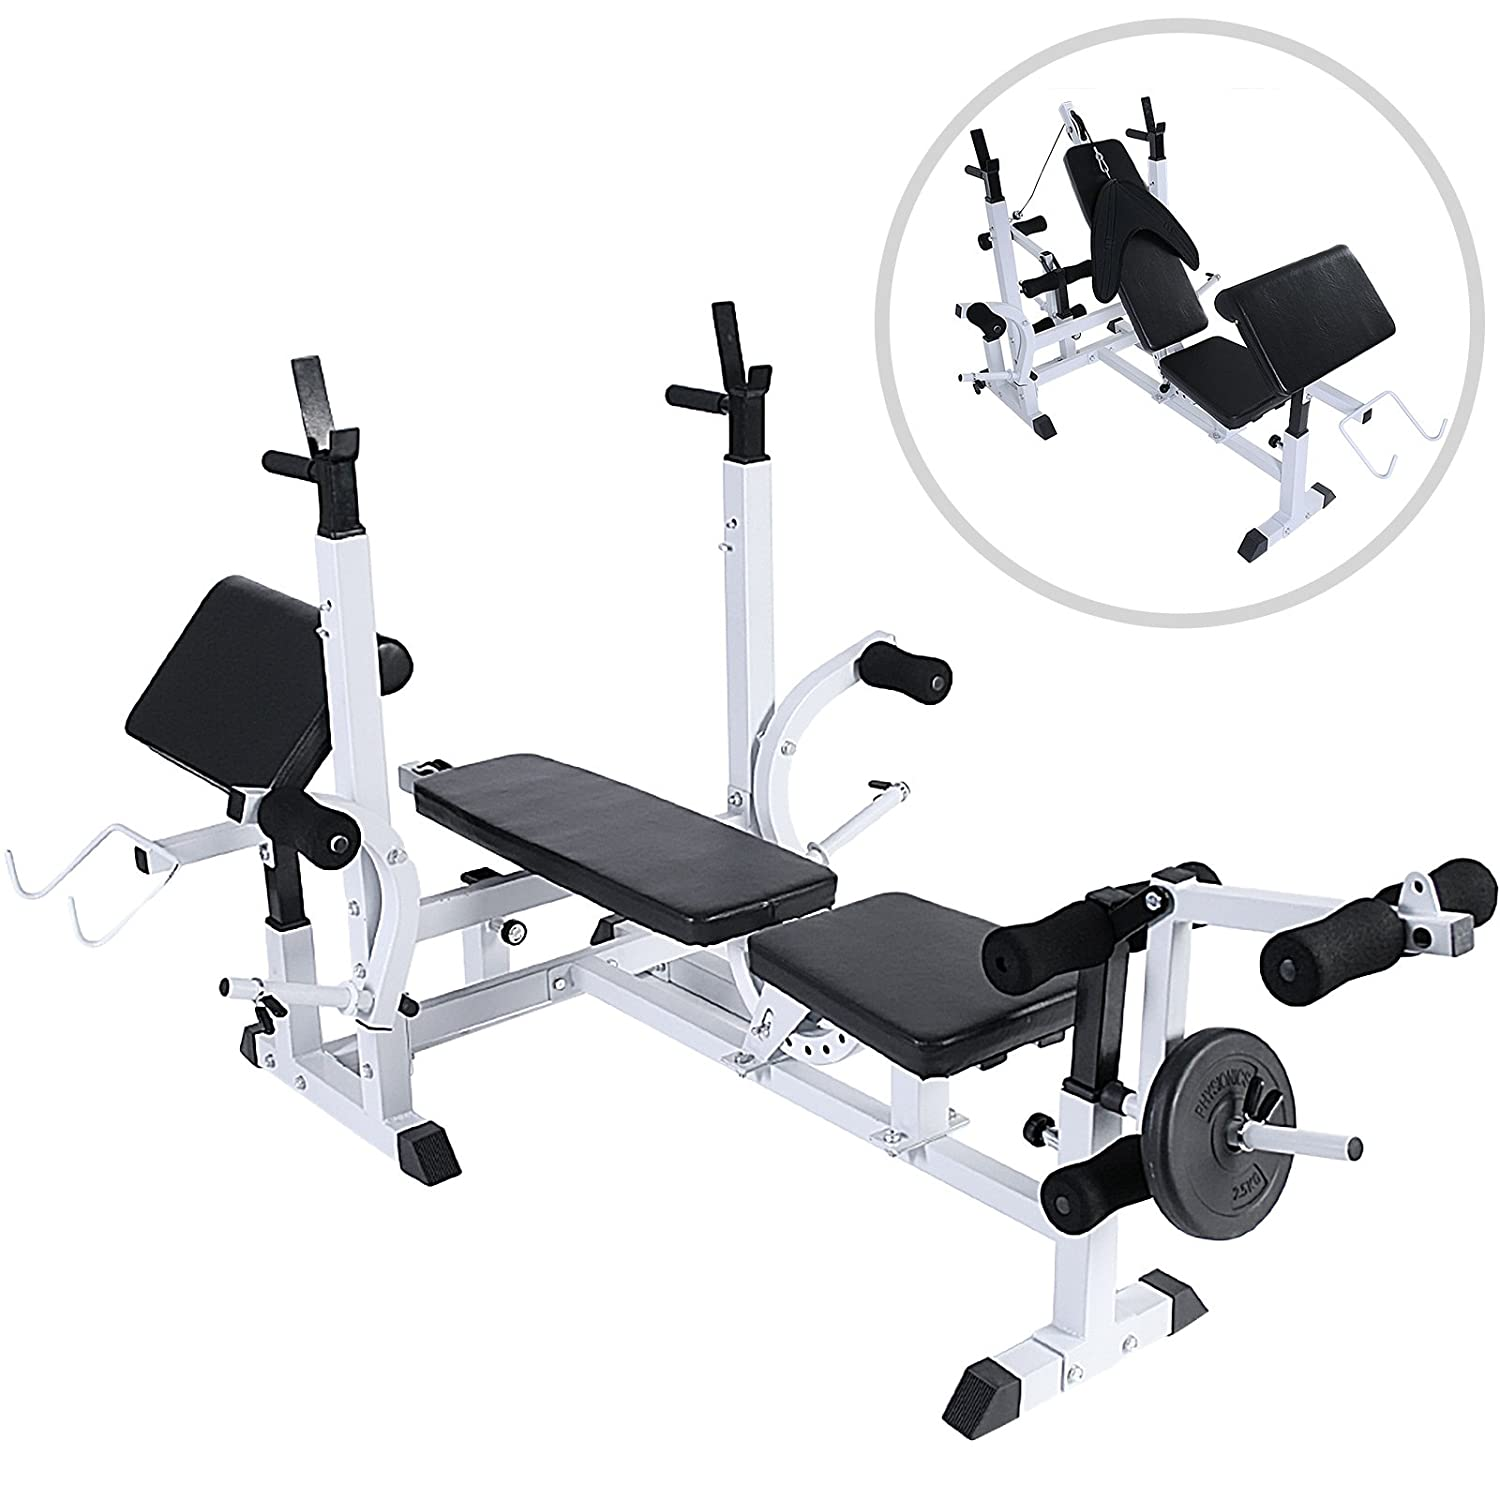 product cfm standard body master bench weight hayneedle butterfly attachment with champ